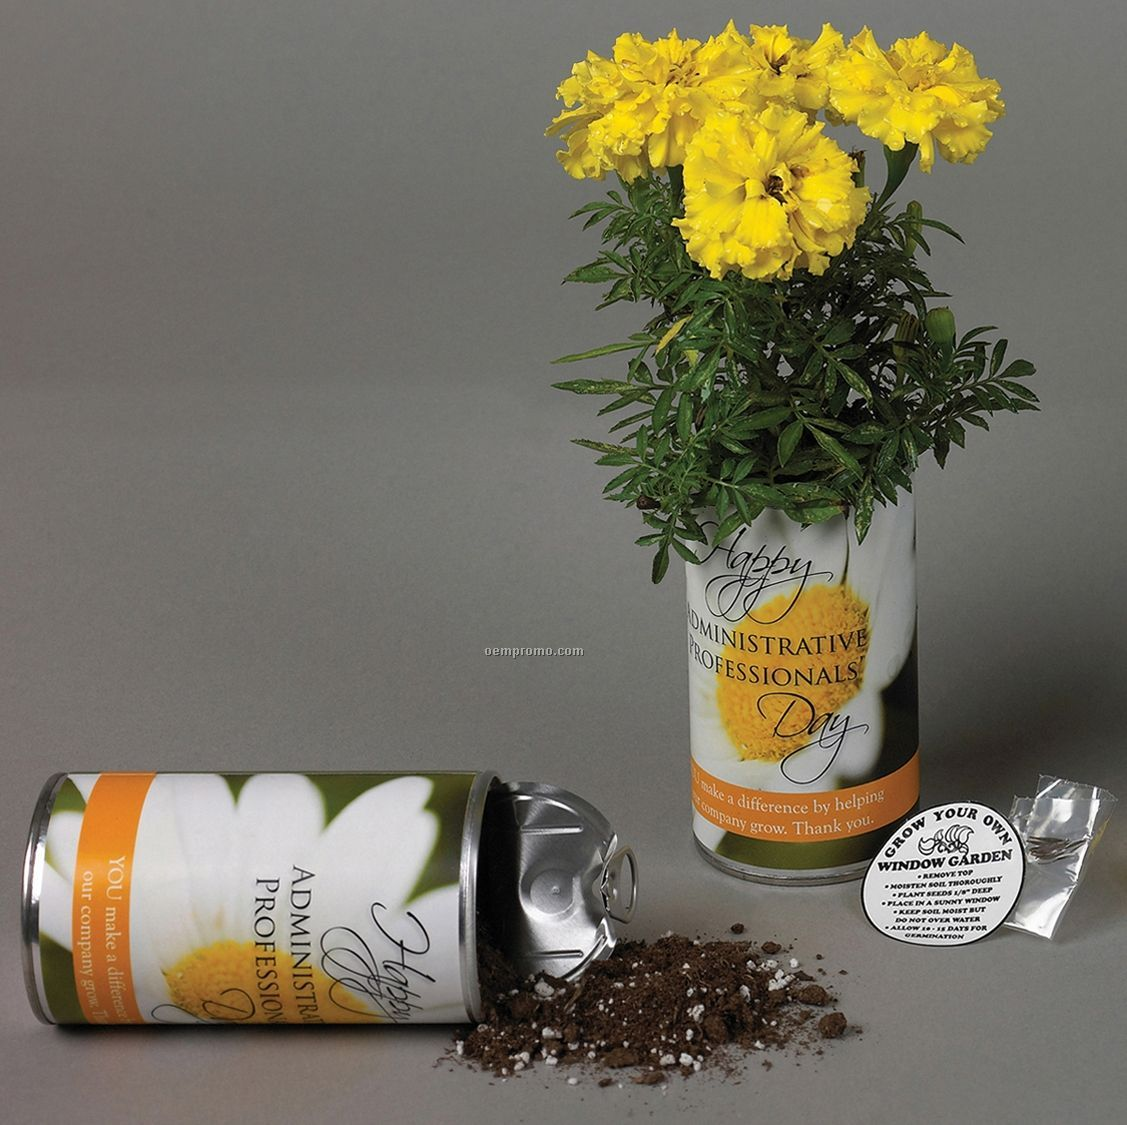 12 Ounce Garden Can With Potting Soil & Seeds